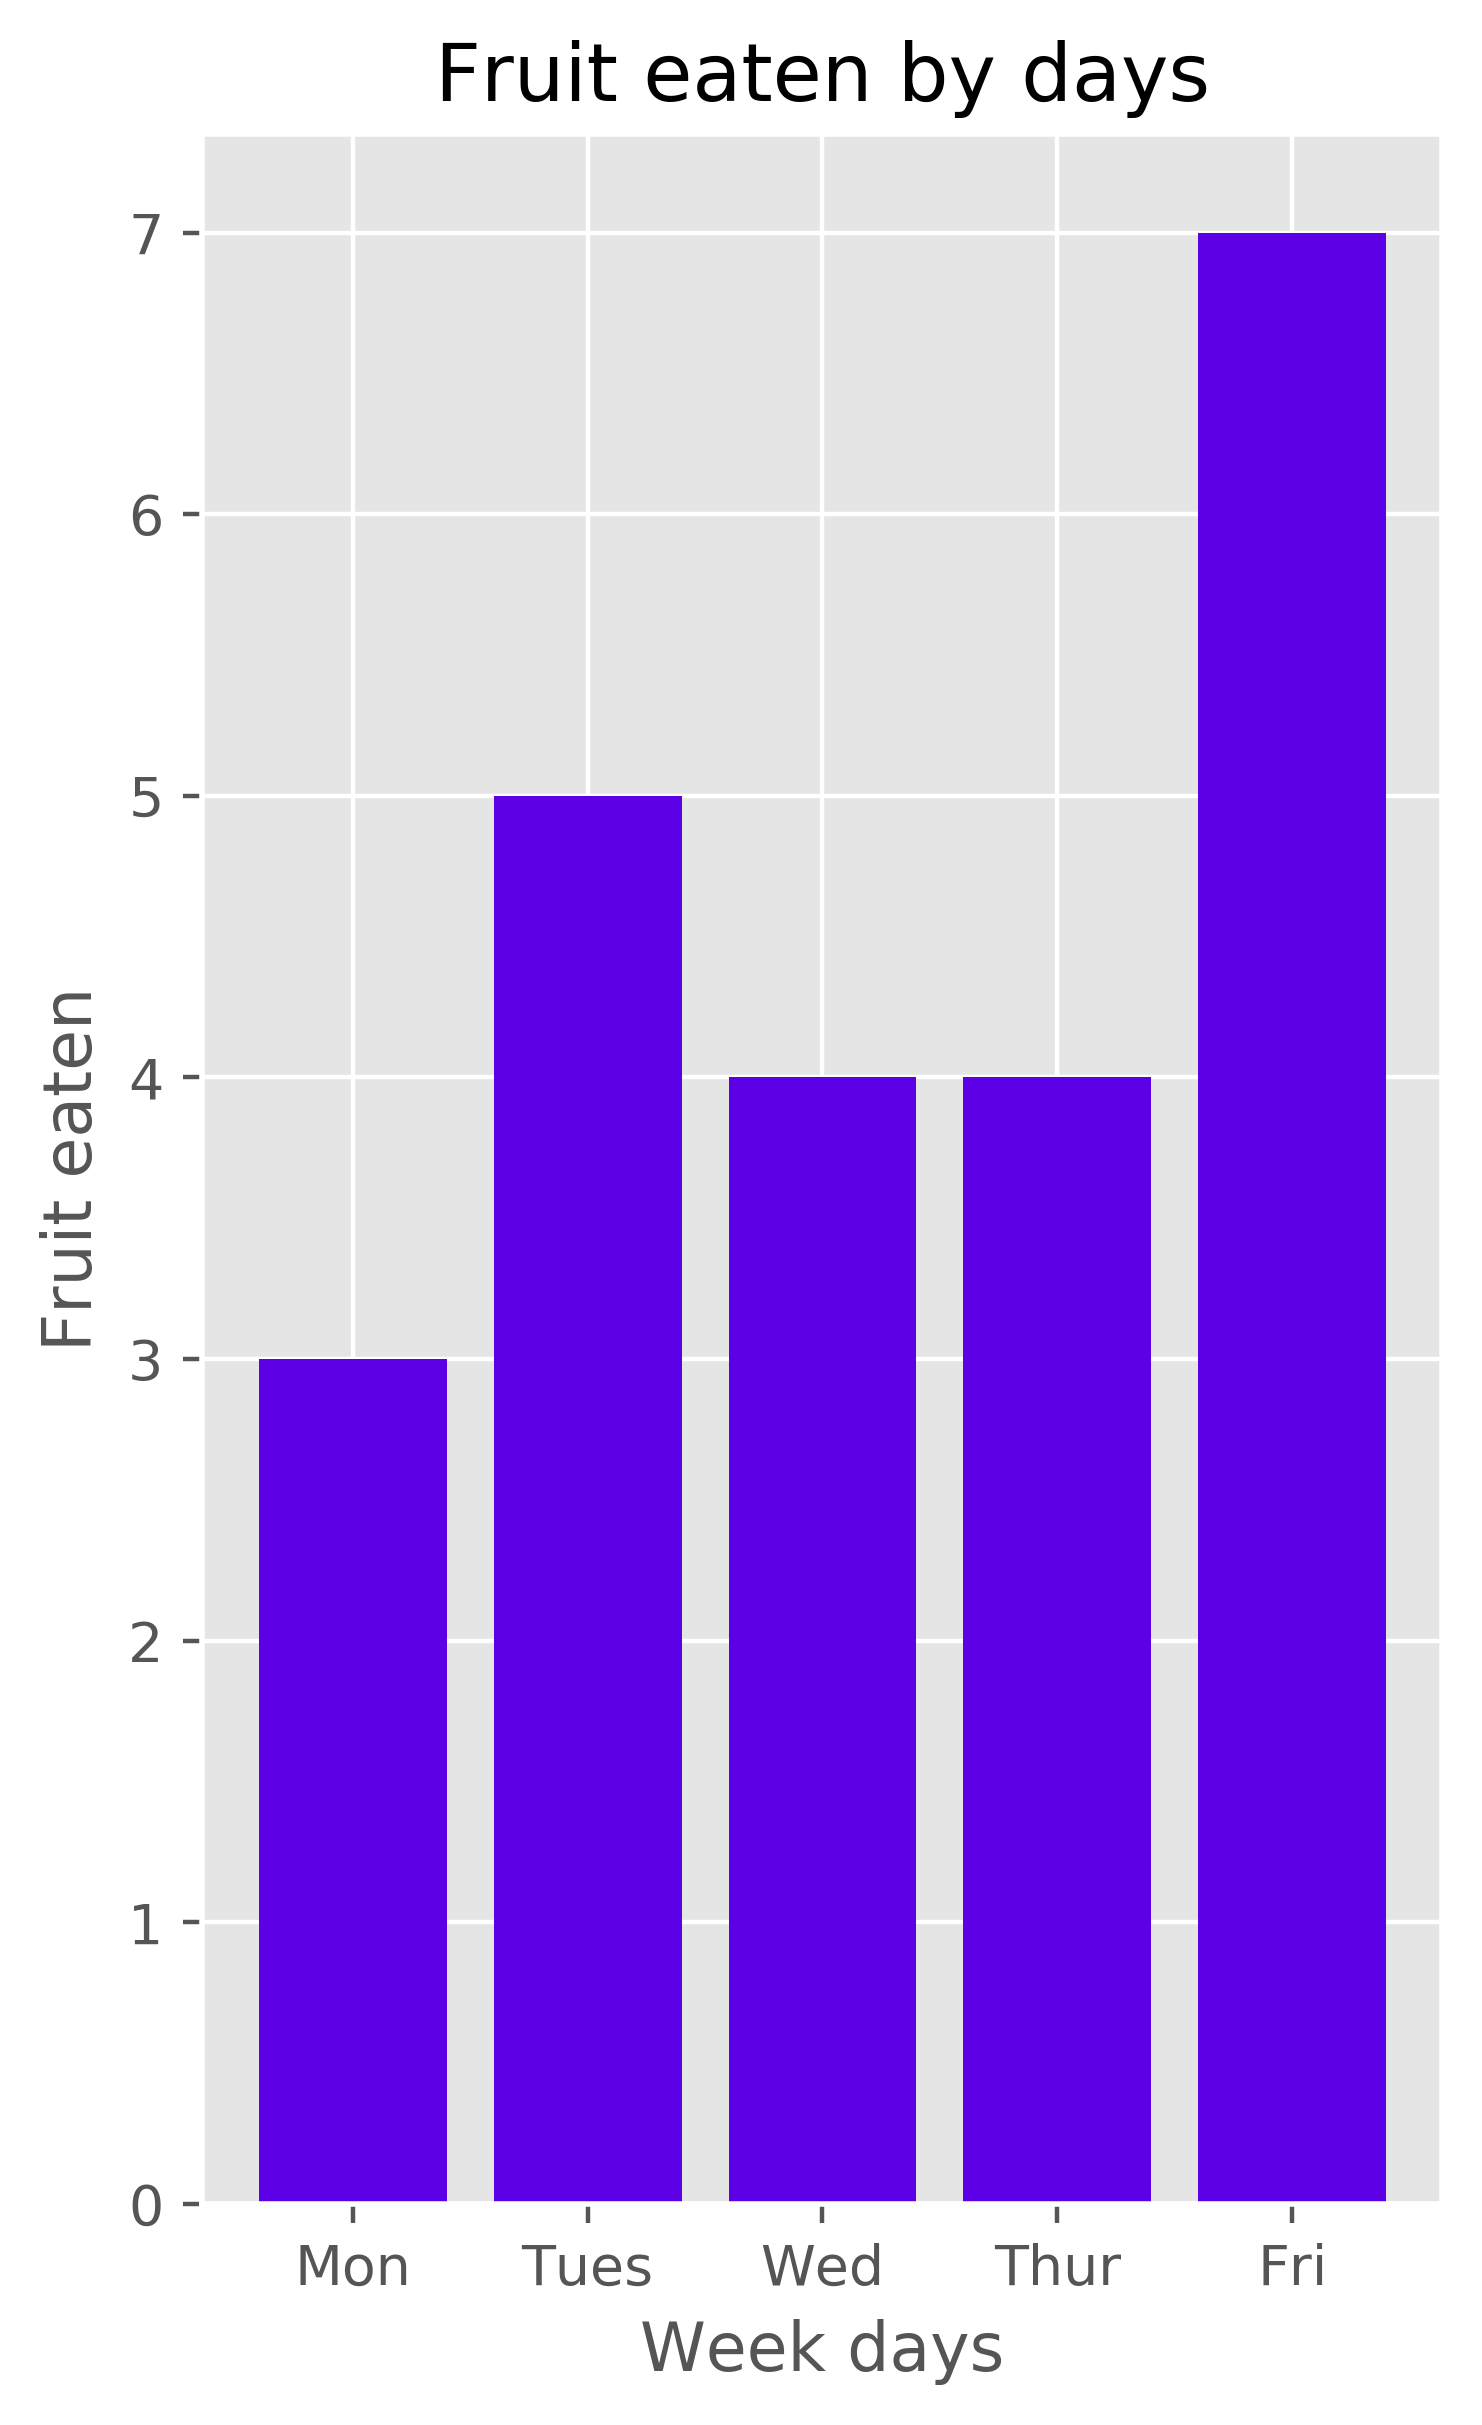 Pyplot bar chart created in Python